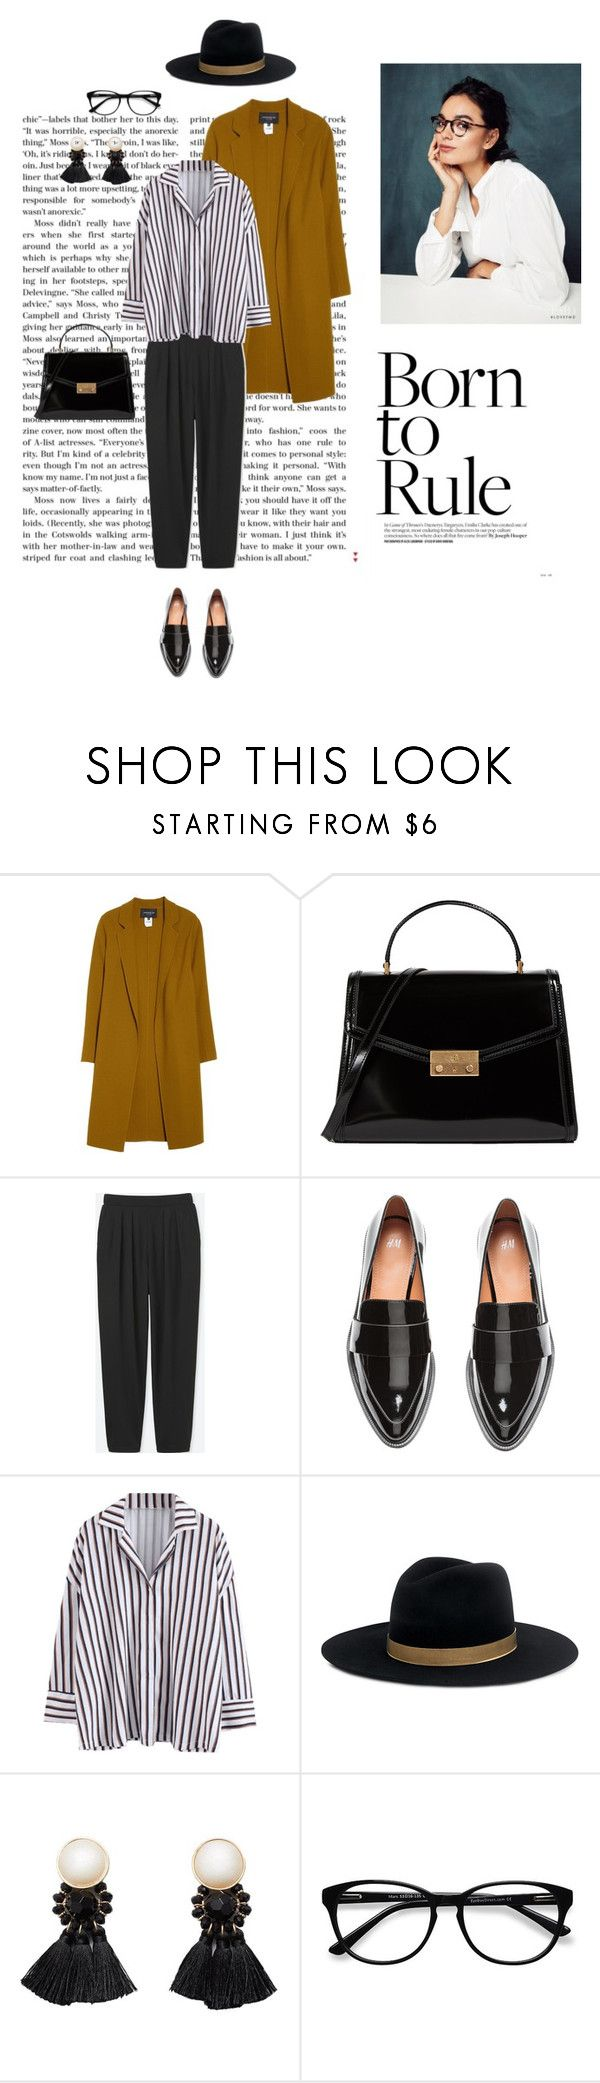 """04/02"" by dorey on Polyvore featuring Lafayette 148 New York, Tory Burch, Uniqlo, H&M, Janessa Leone, MANGO and EyeBuyDirect.com"